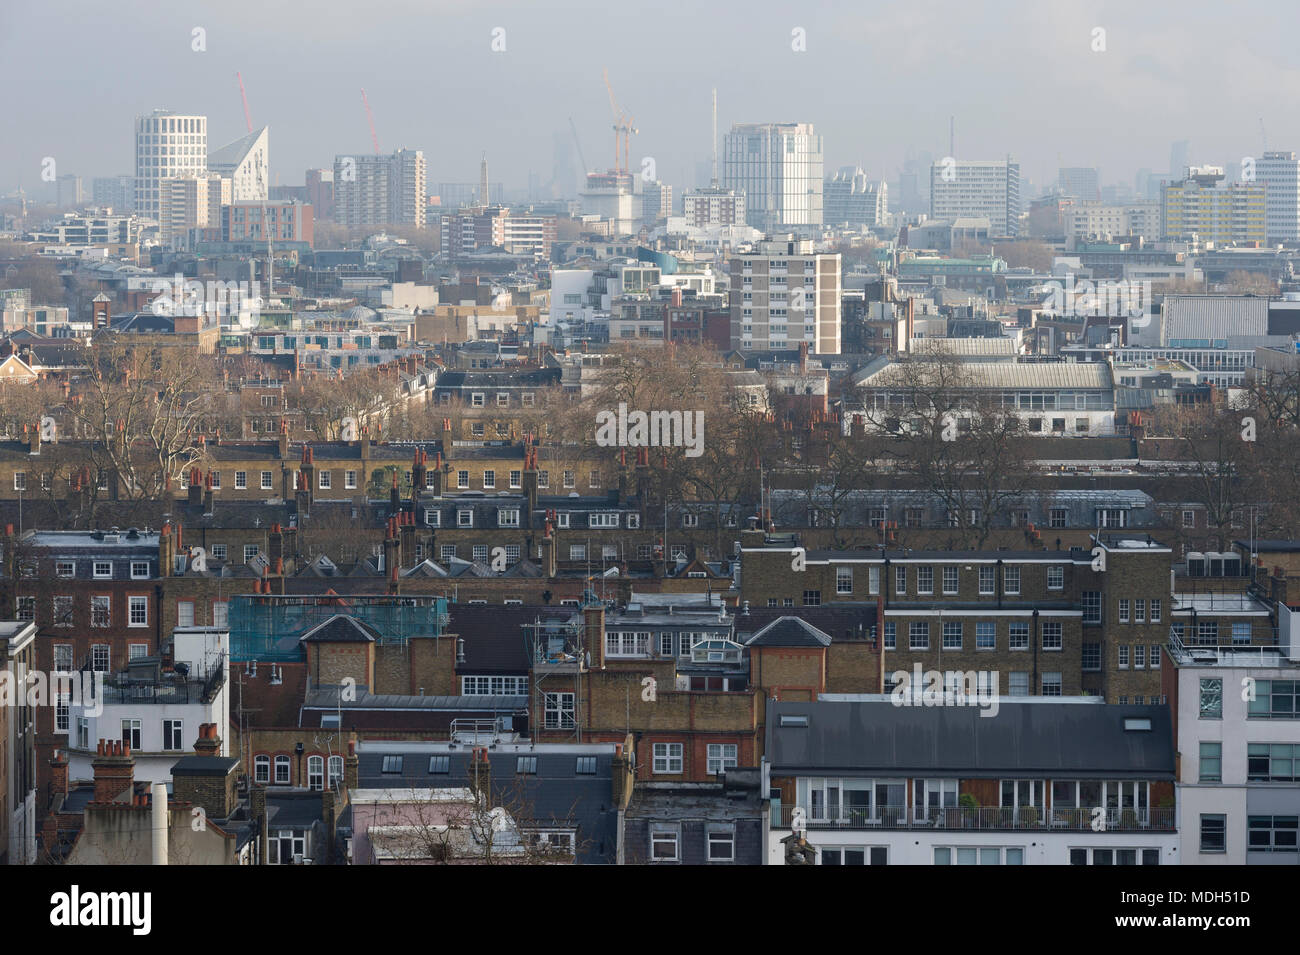 Central London, rooftops photographed from the roof of the old Central Saint Martins art college, Holborn, London, Britain. 8th January 2017 - Stock Image